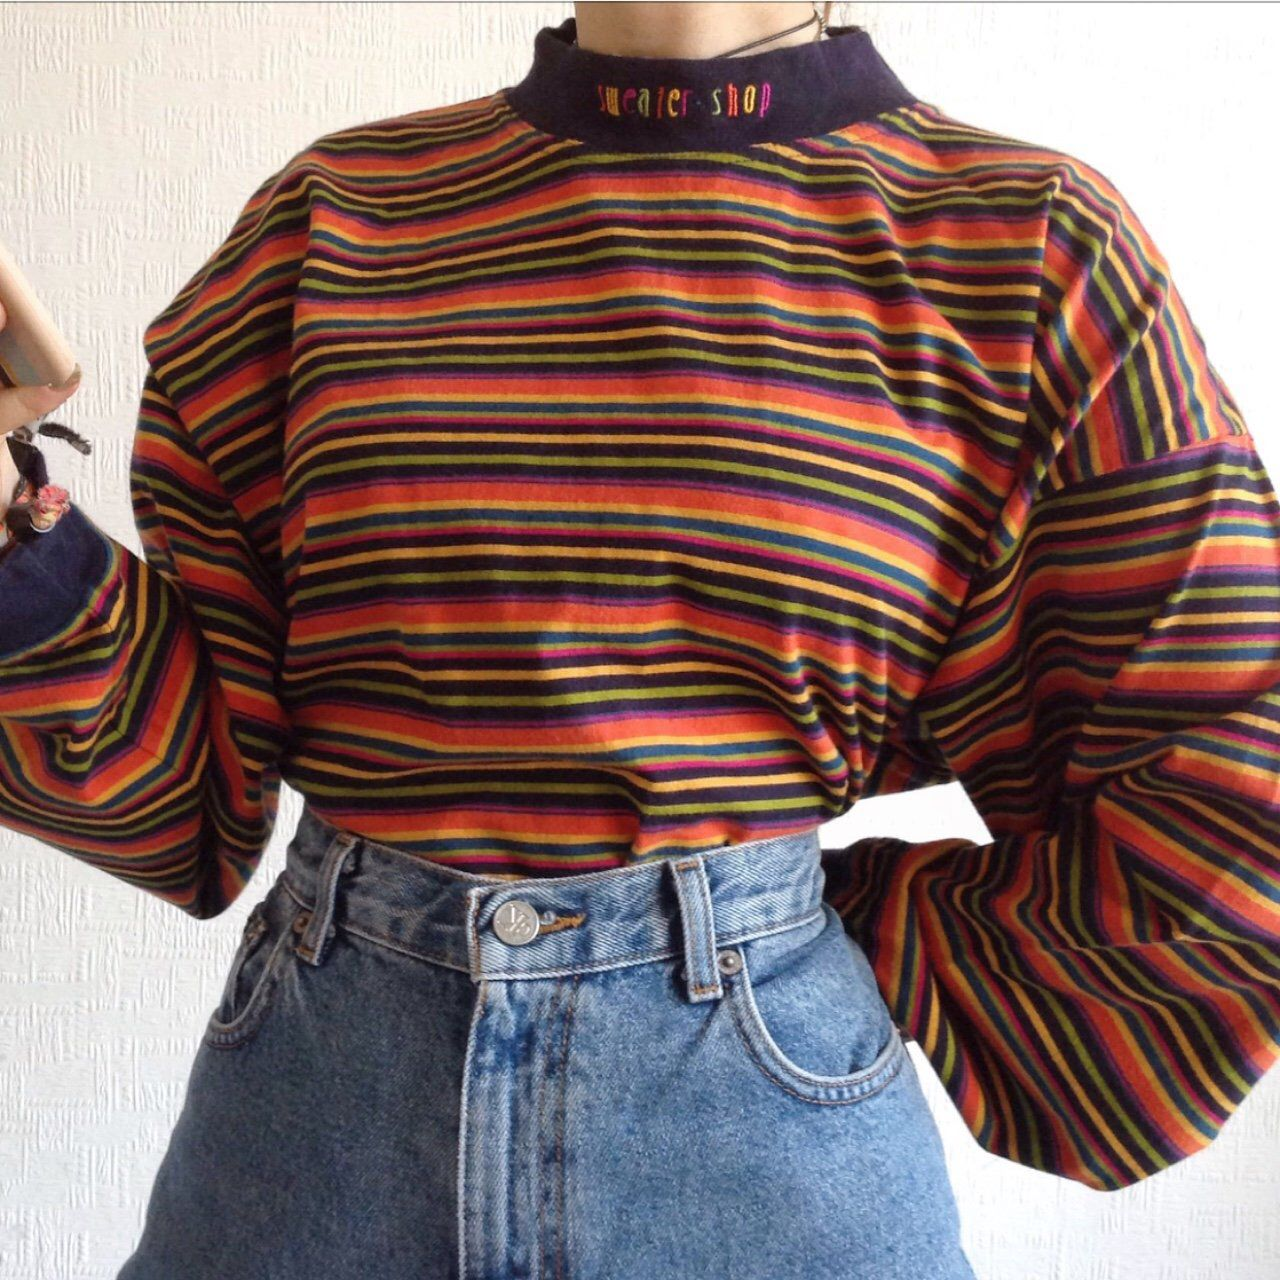 90s 80s Fashion Aesthetic